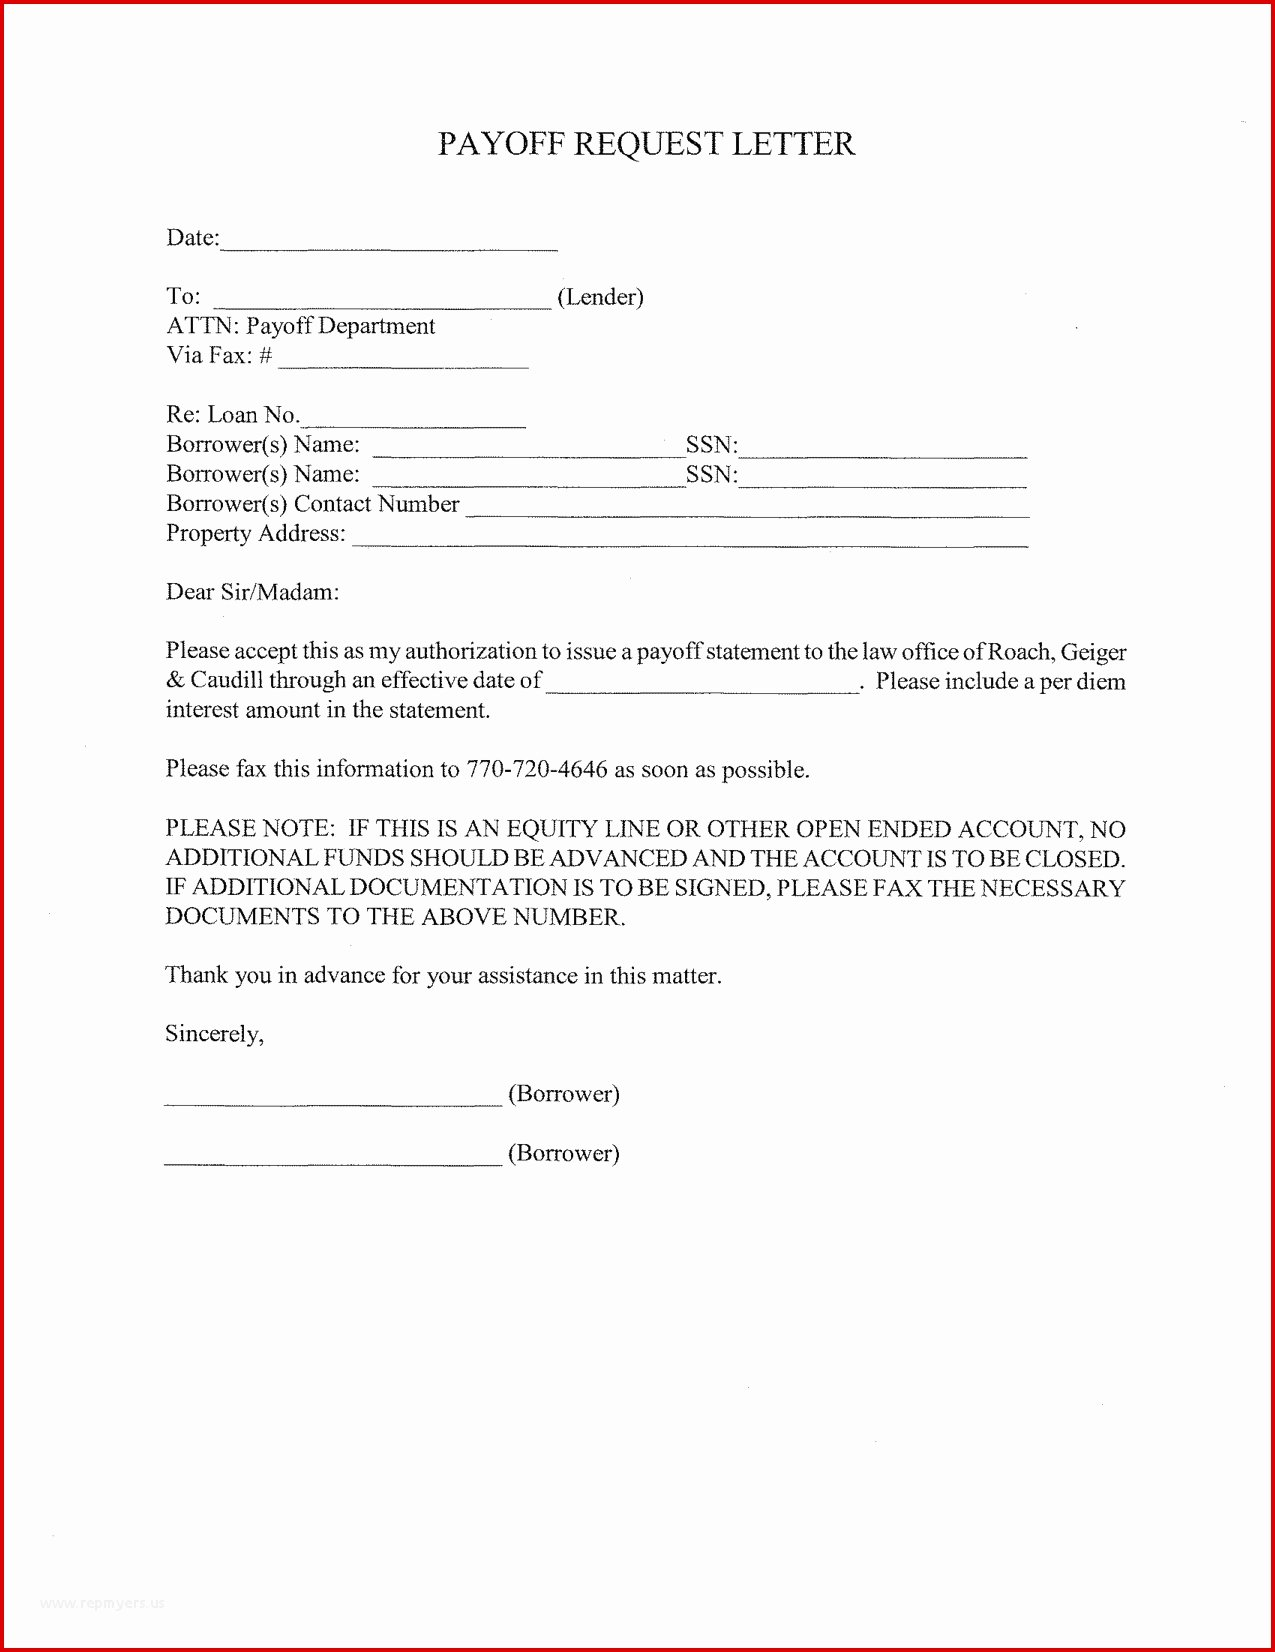 Sample Letter to Close Bank Account Elegant Bank Account Closure Request Letter format Sample Letters